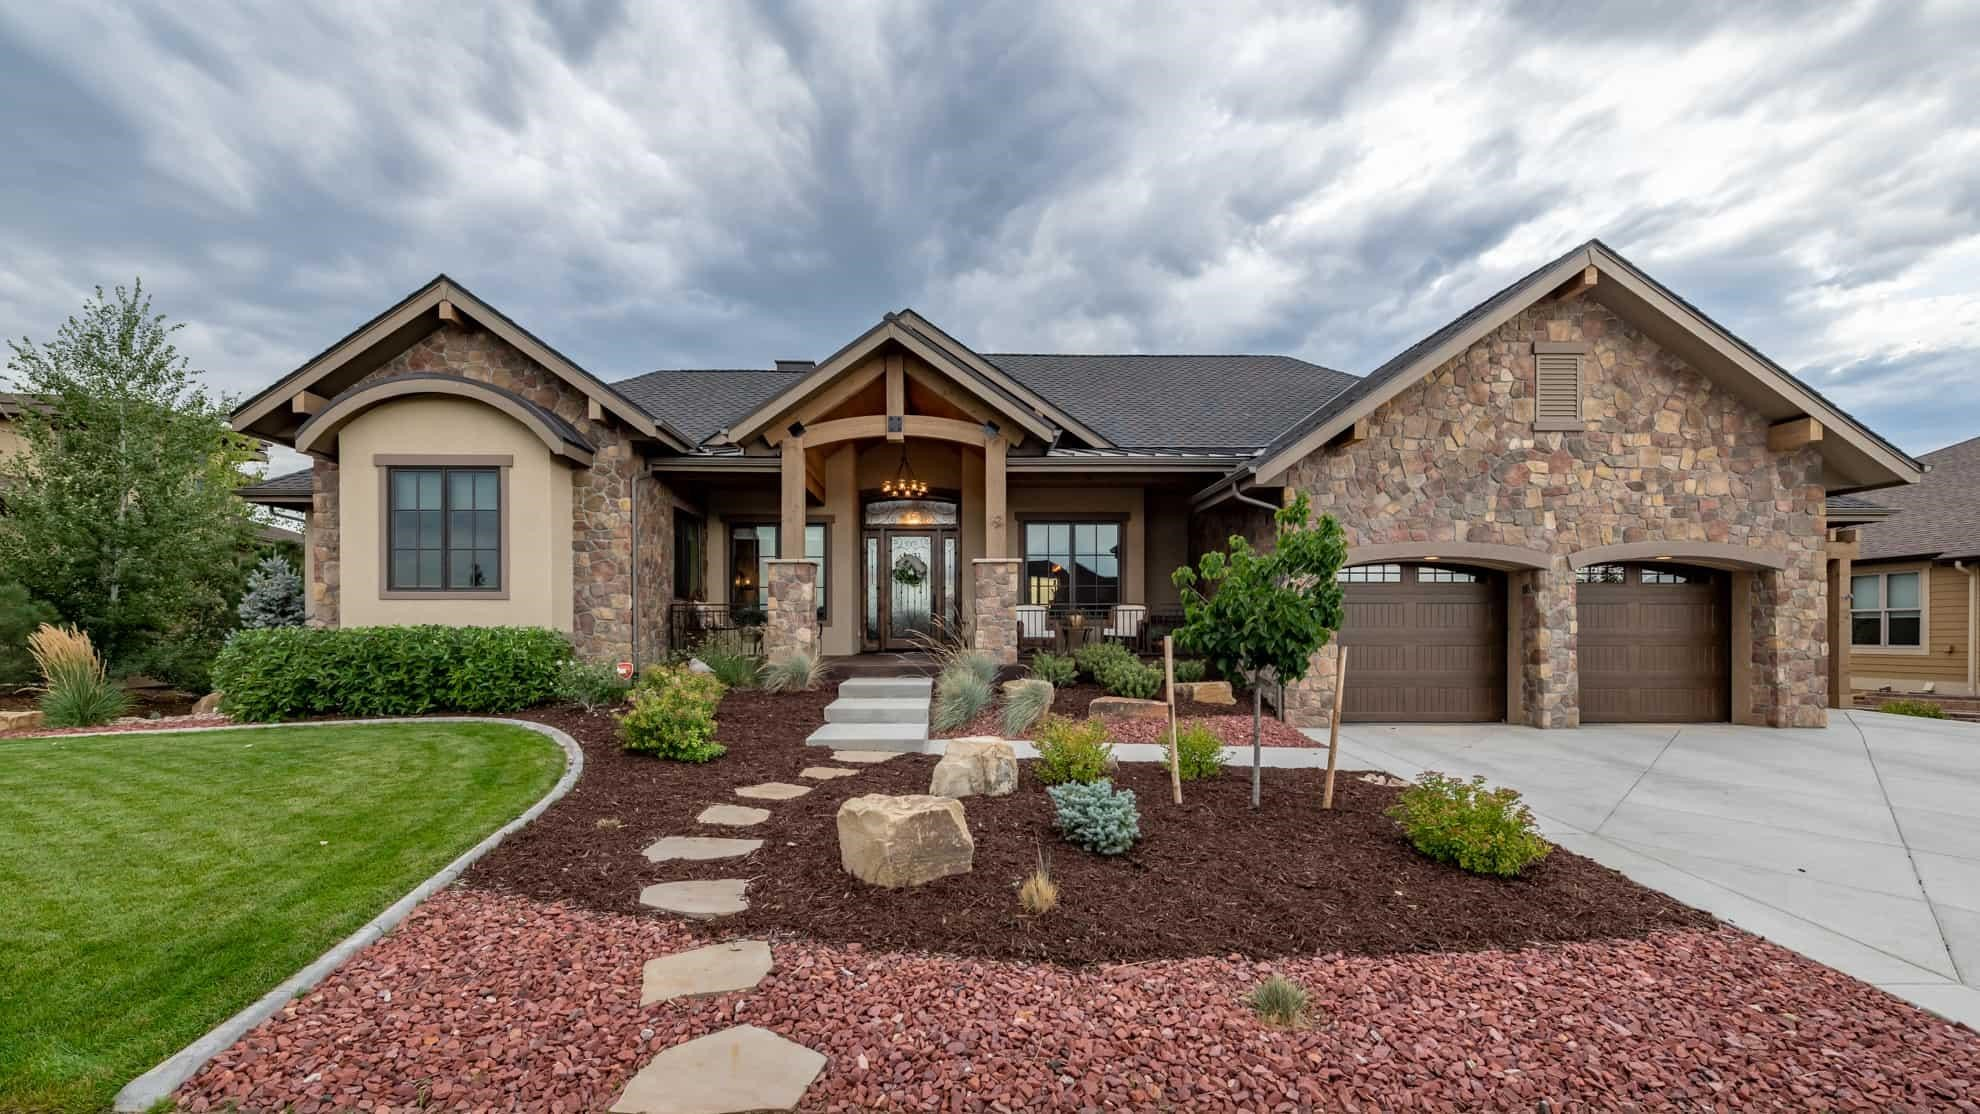 Ranch style home with stone siding, timber-frame entrance, and other rustic features